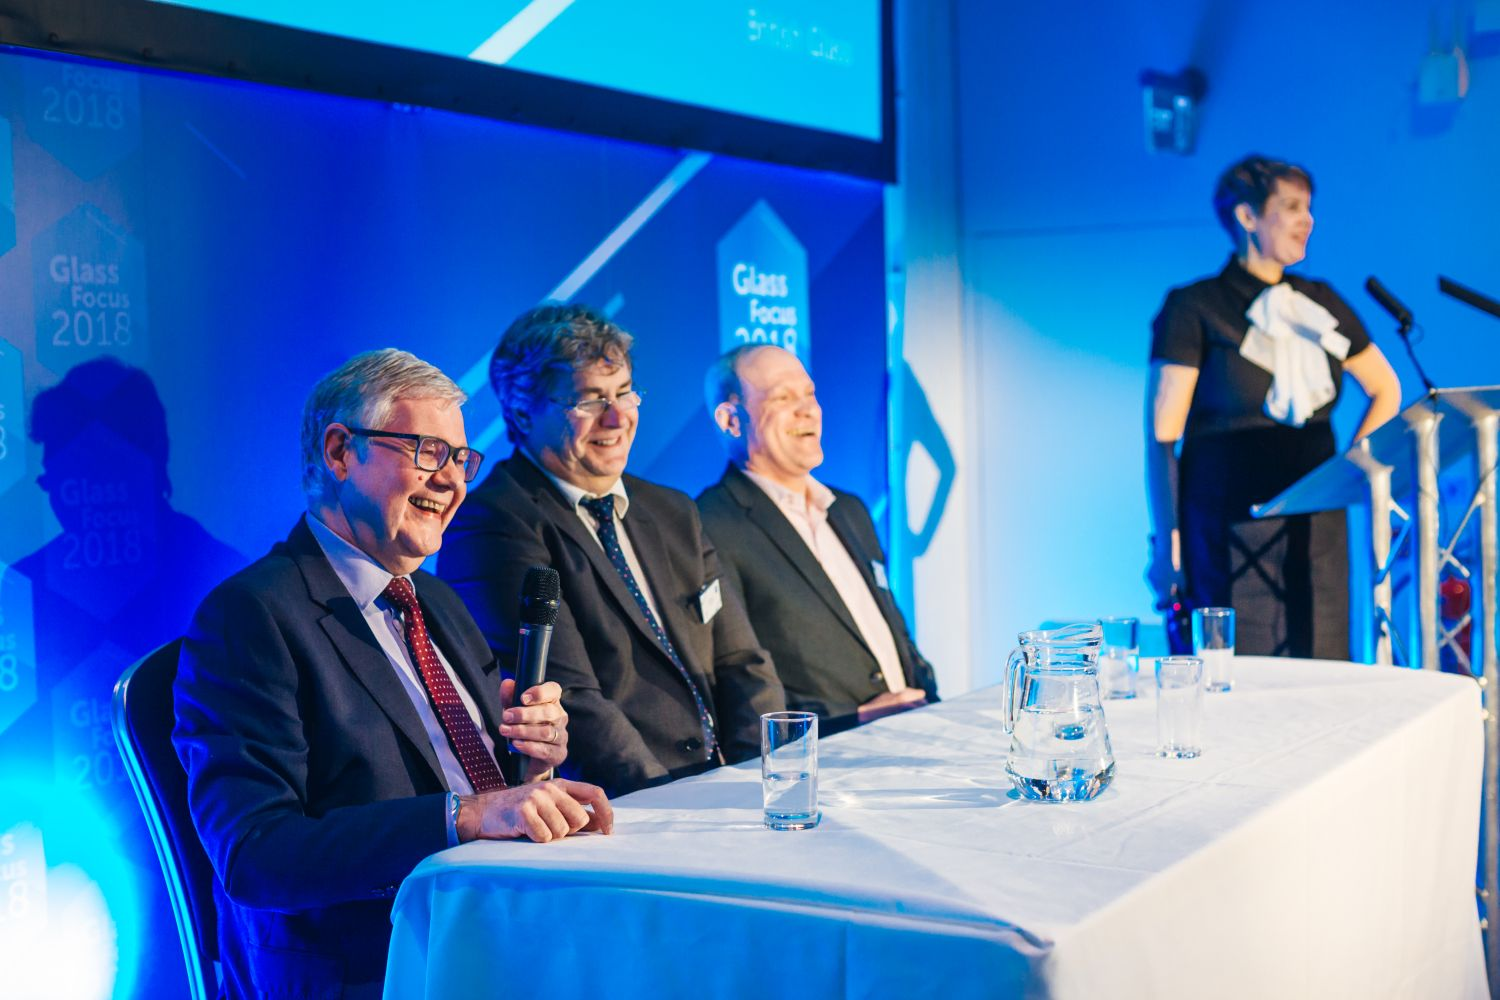 Graham Hillier - Centre for Process Innovation, Dave Dalton - British Glass, Alan Norbury - Siemens, and Isla Wilson - Ruby Star Associates